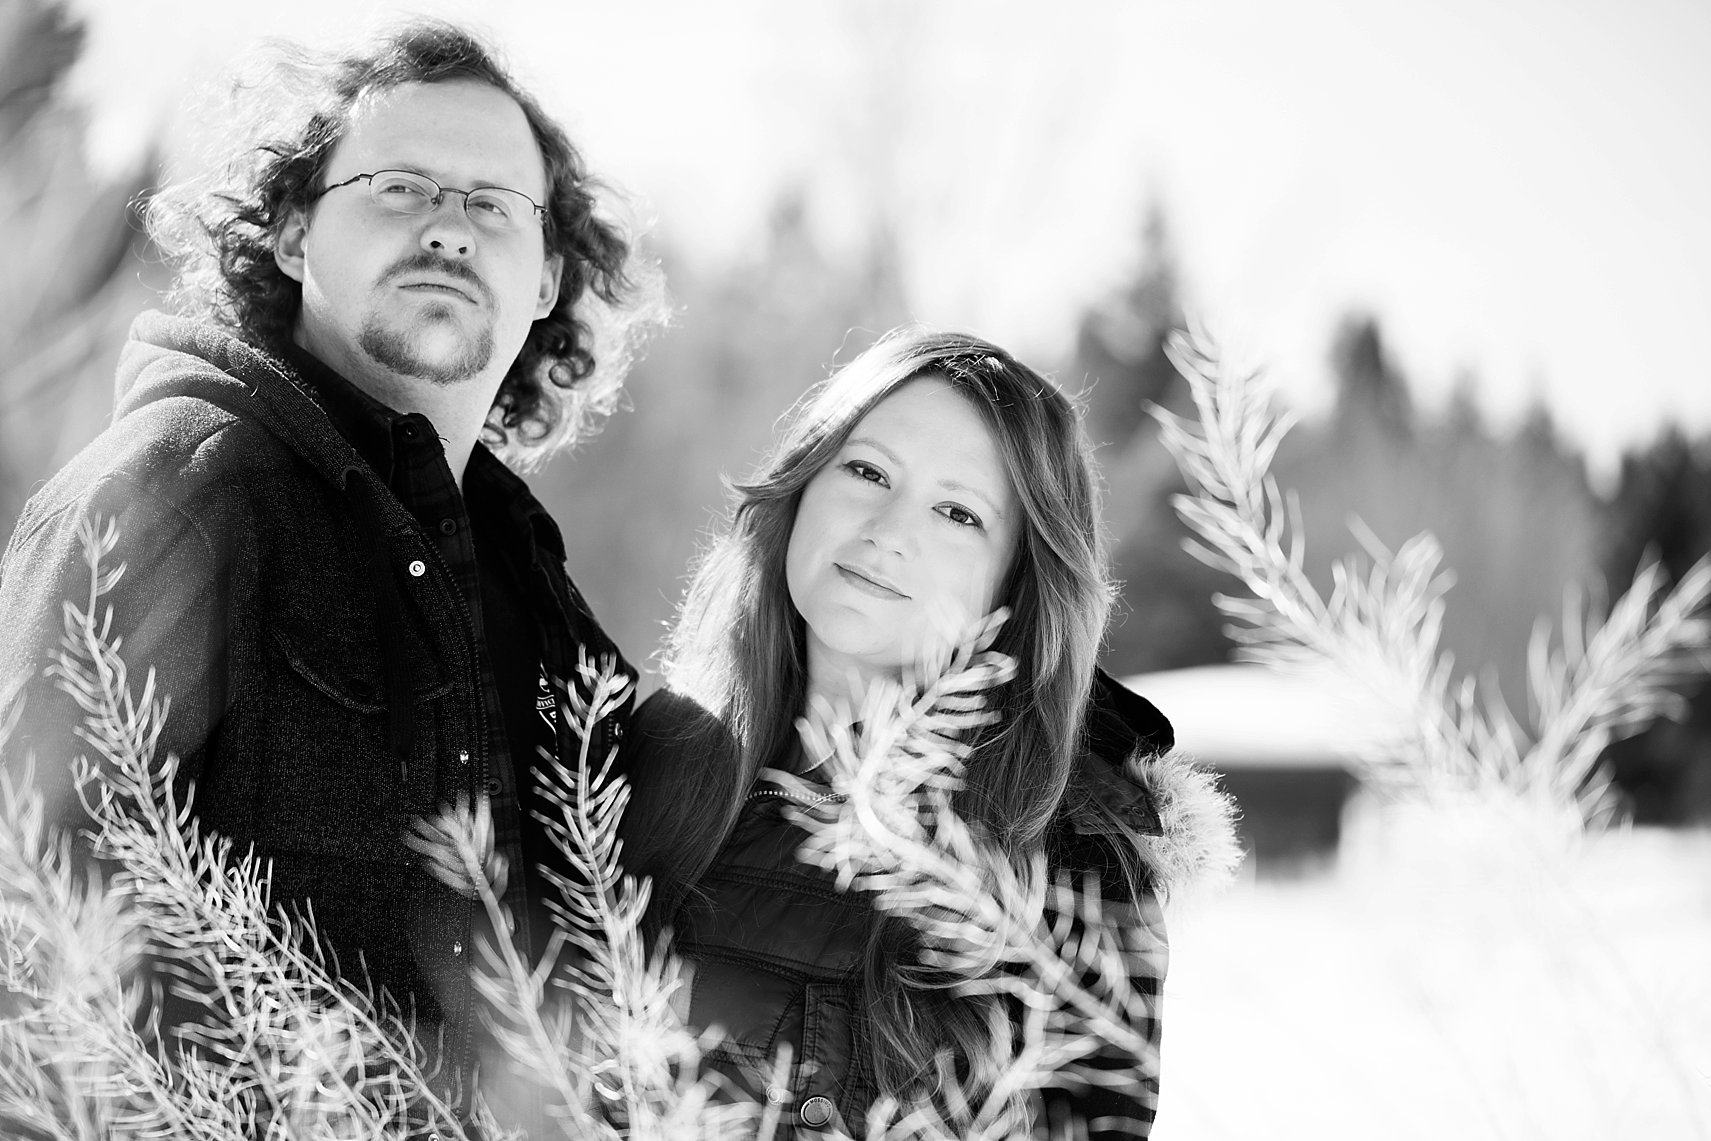 Sneak Peek Calgary Winter Engagement Session Emily Exon Photography The event also occurred over twitch. emily exon photography